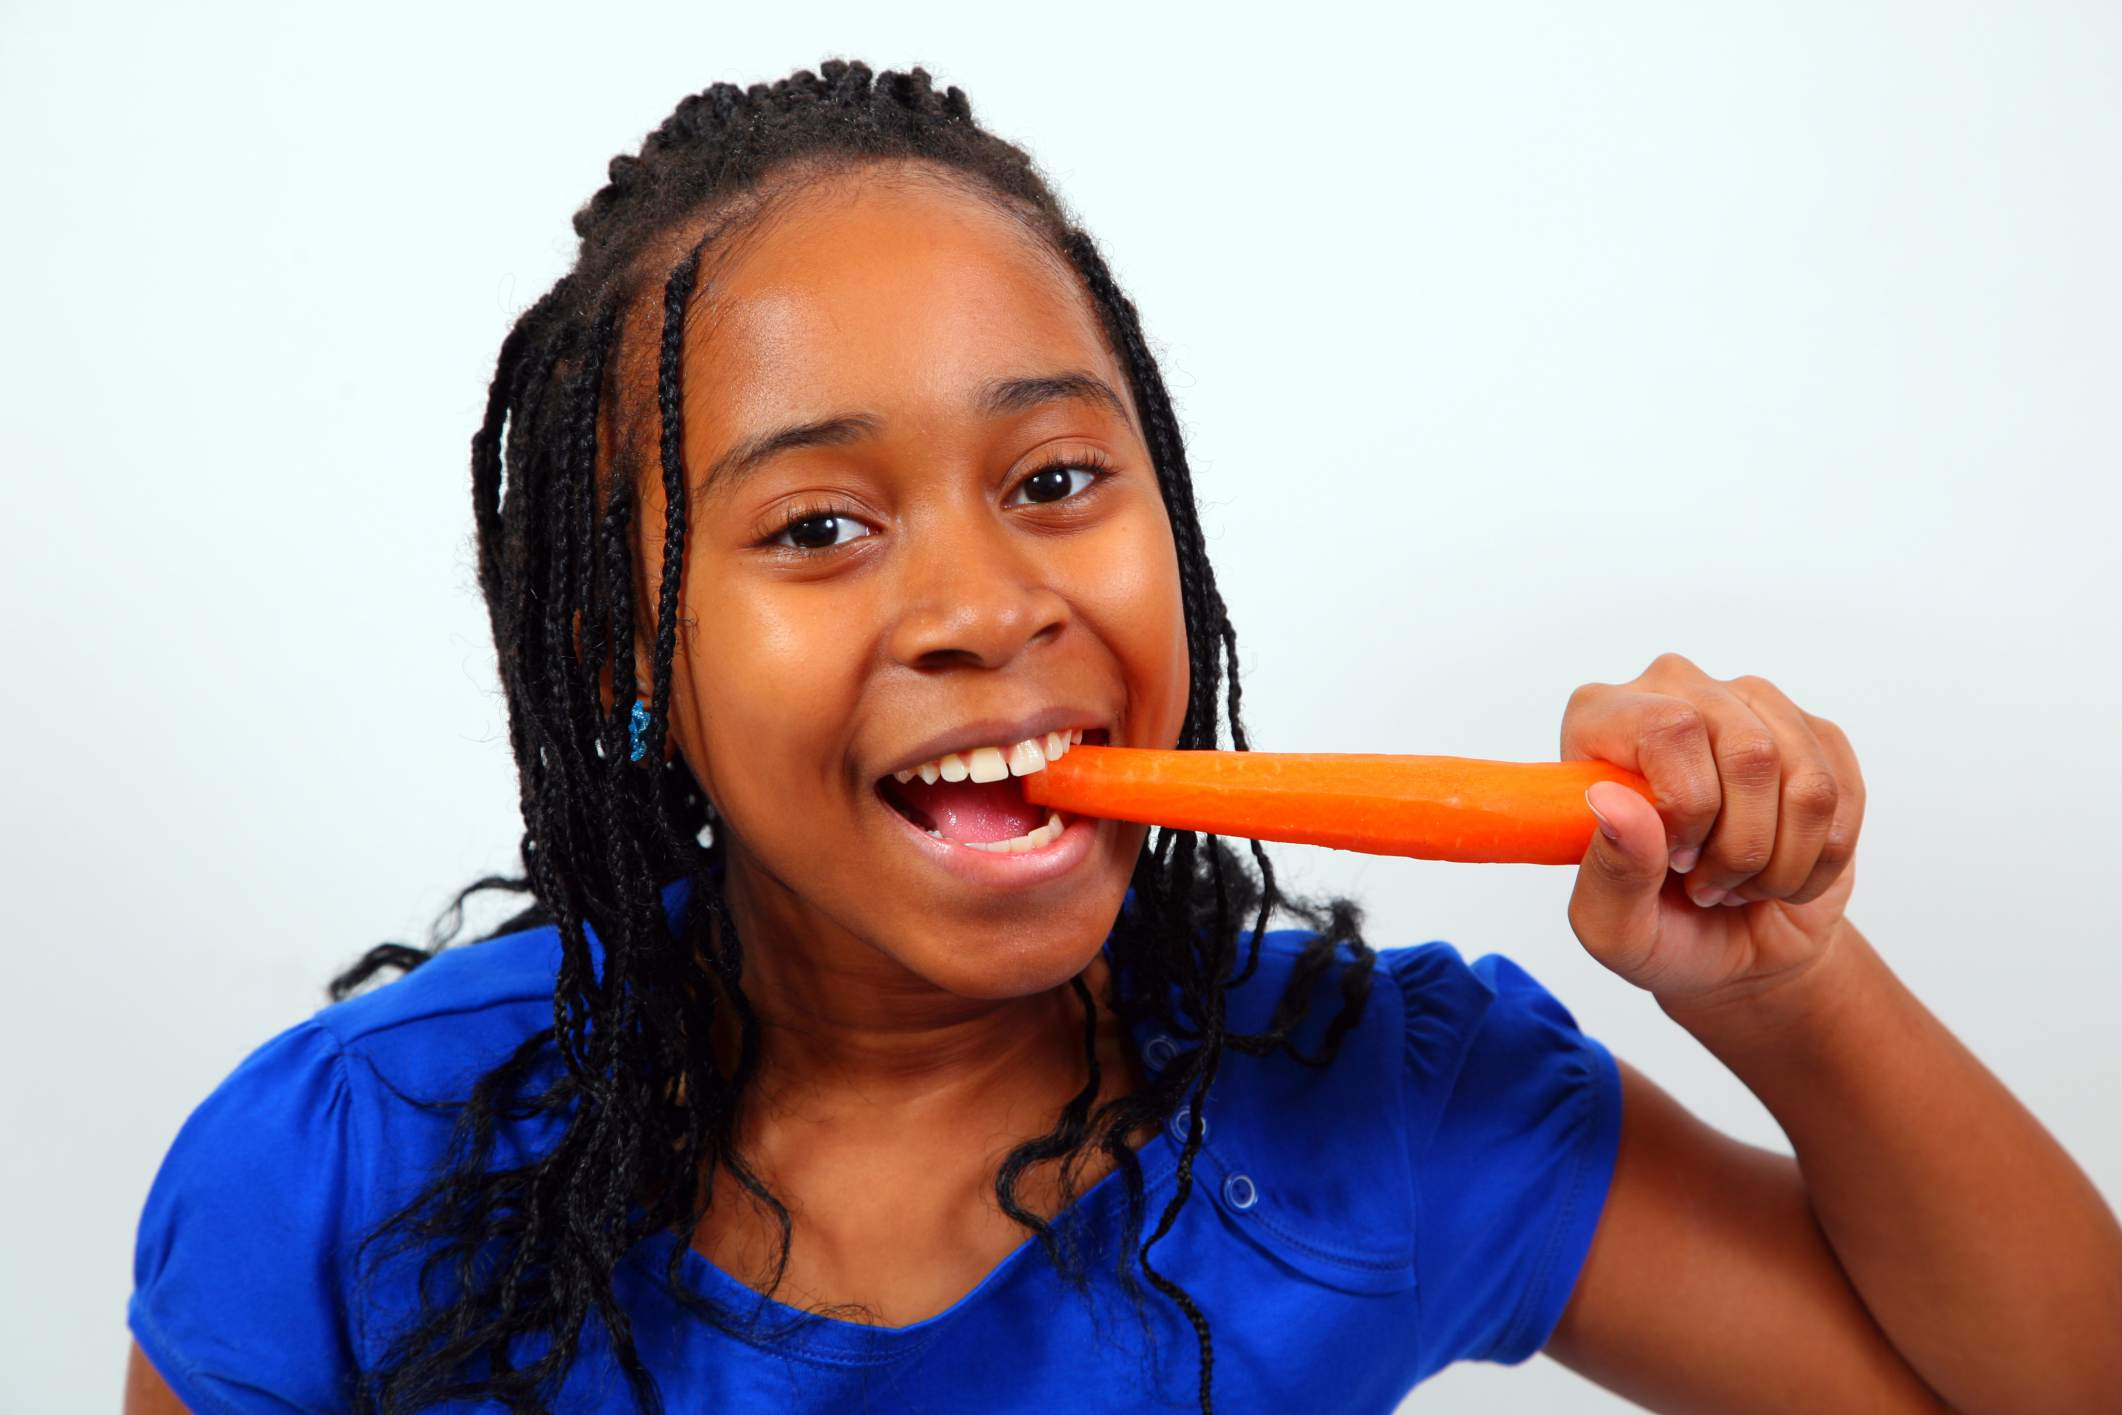 Teens need up to 3 cups of vegetables every day.